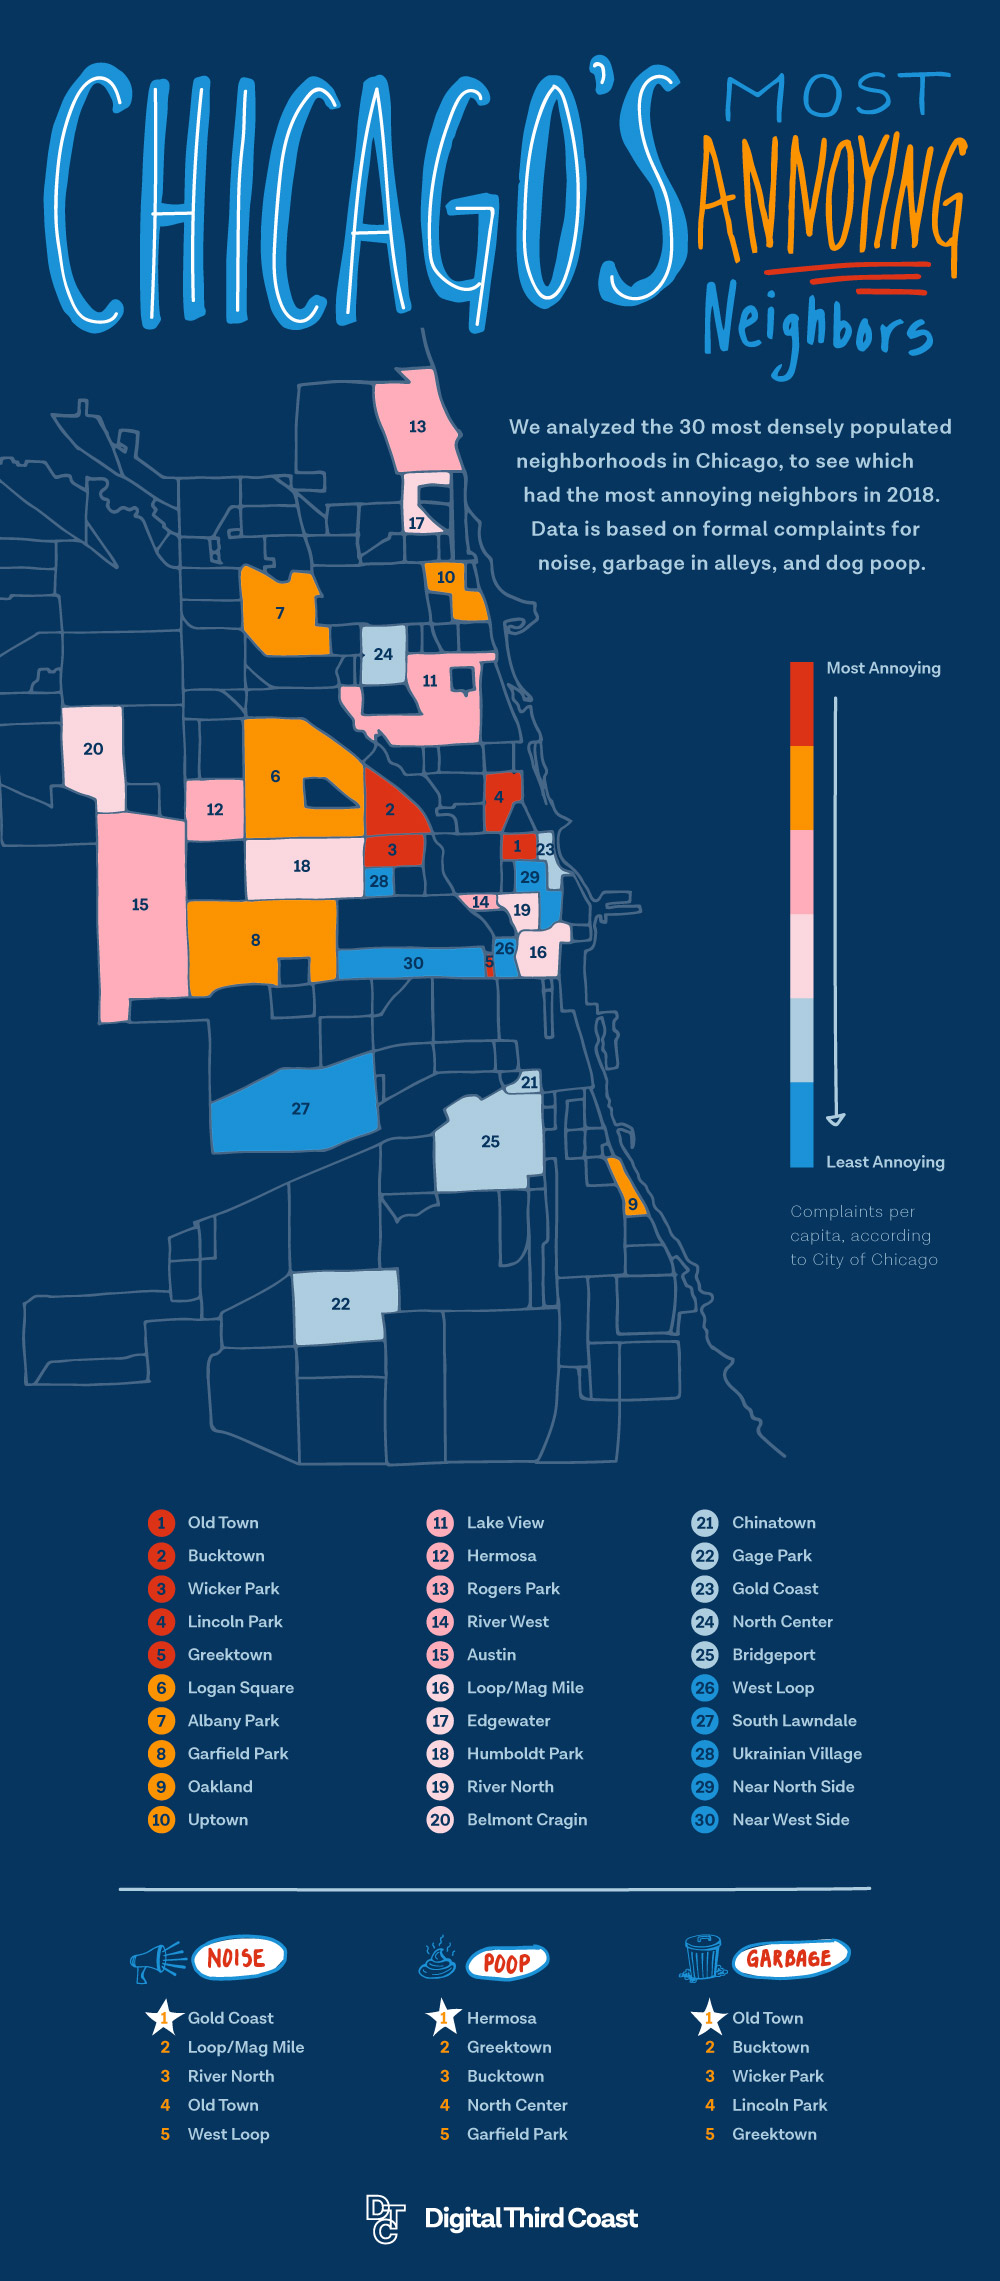 New data on most annoying Chicago neighbors of 2018